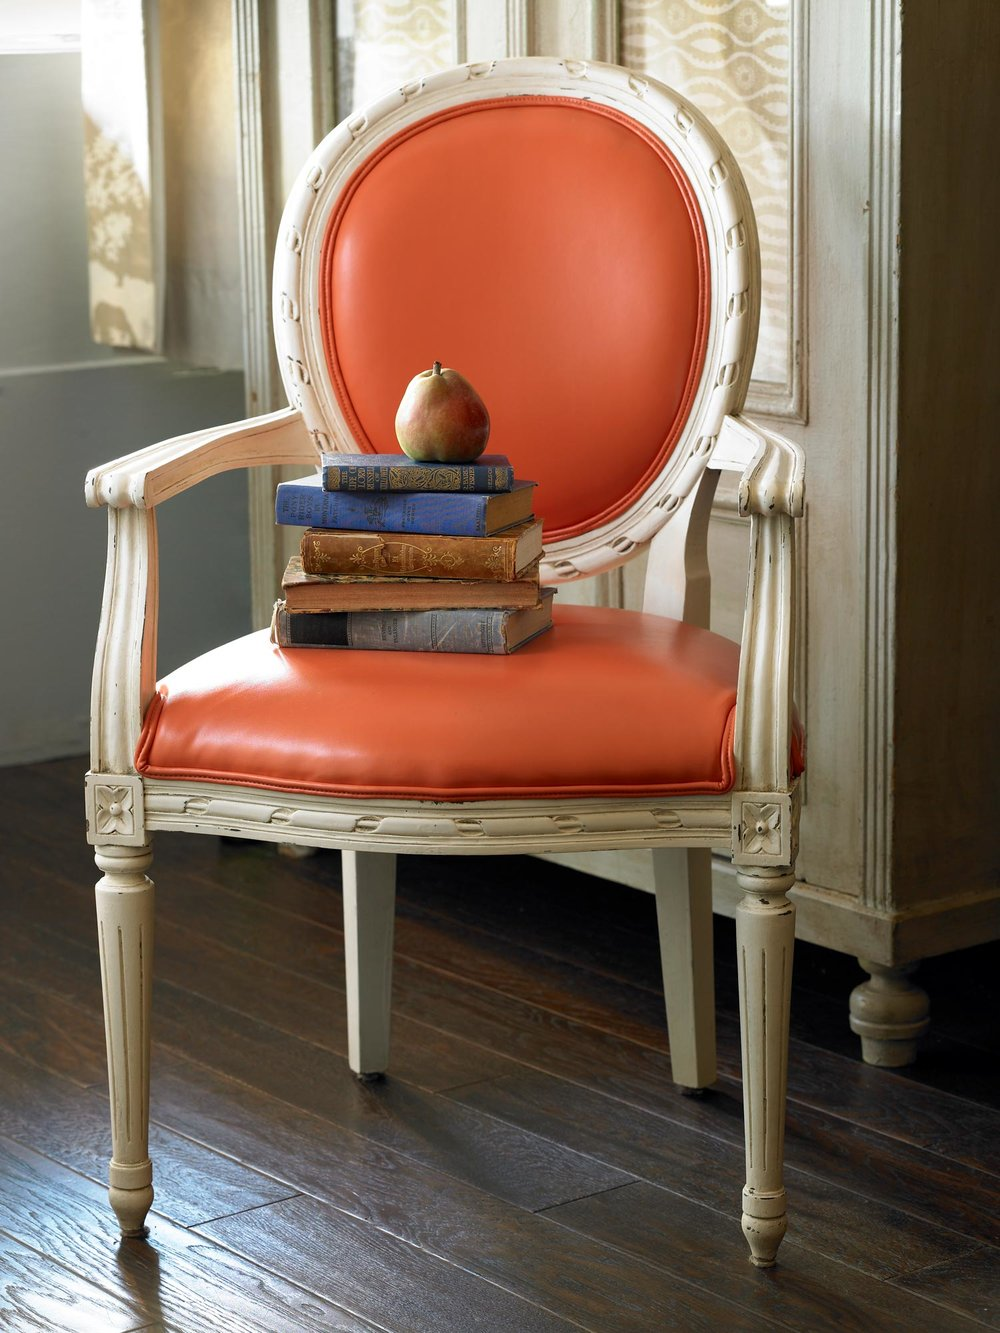 orange-chair.jpg